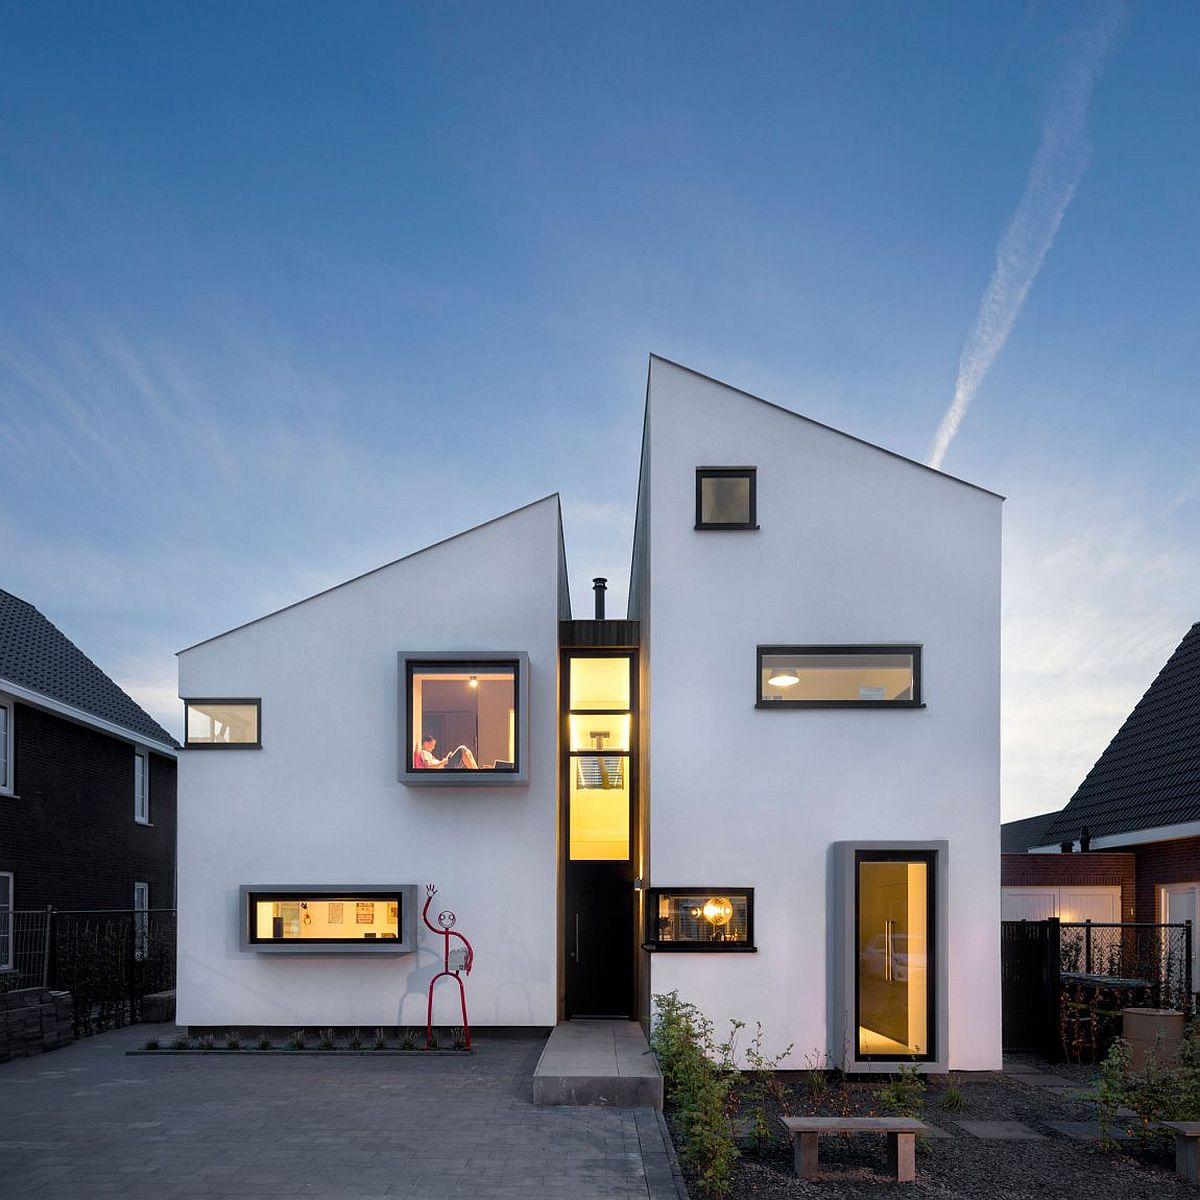 House daasdonklaan traditional dutch design meets modern for Modern house definition